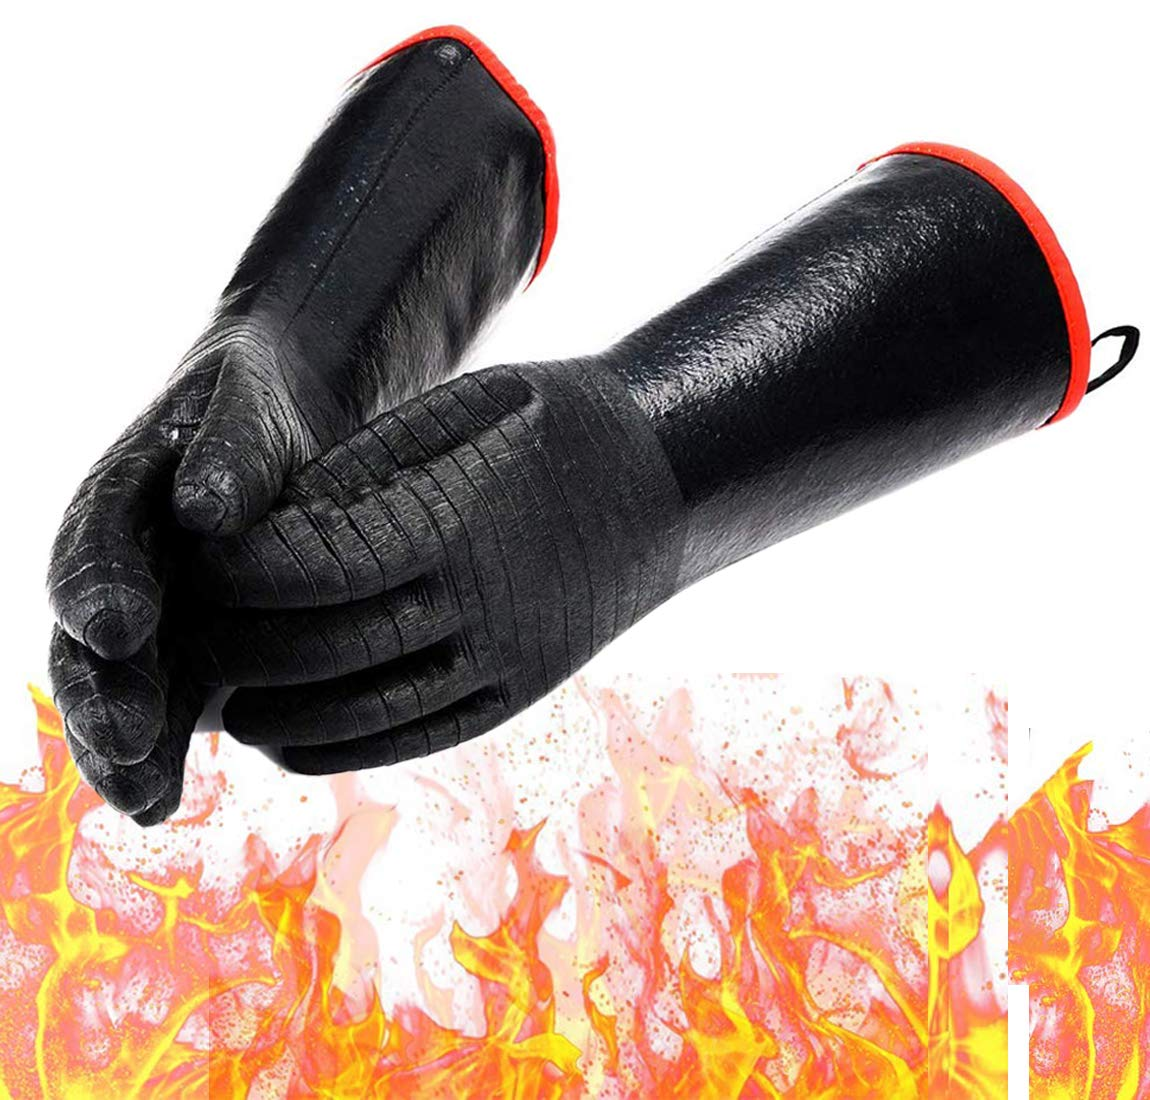 Schwer BBQ Gloves 932? Extreme Heat Resistant Gloves Waterproof Oil Resistant Grill Gloves for Turkey Fryer, Baking, Oven, Barbecue Neoprene Coating with Long Sleeve